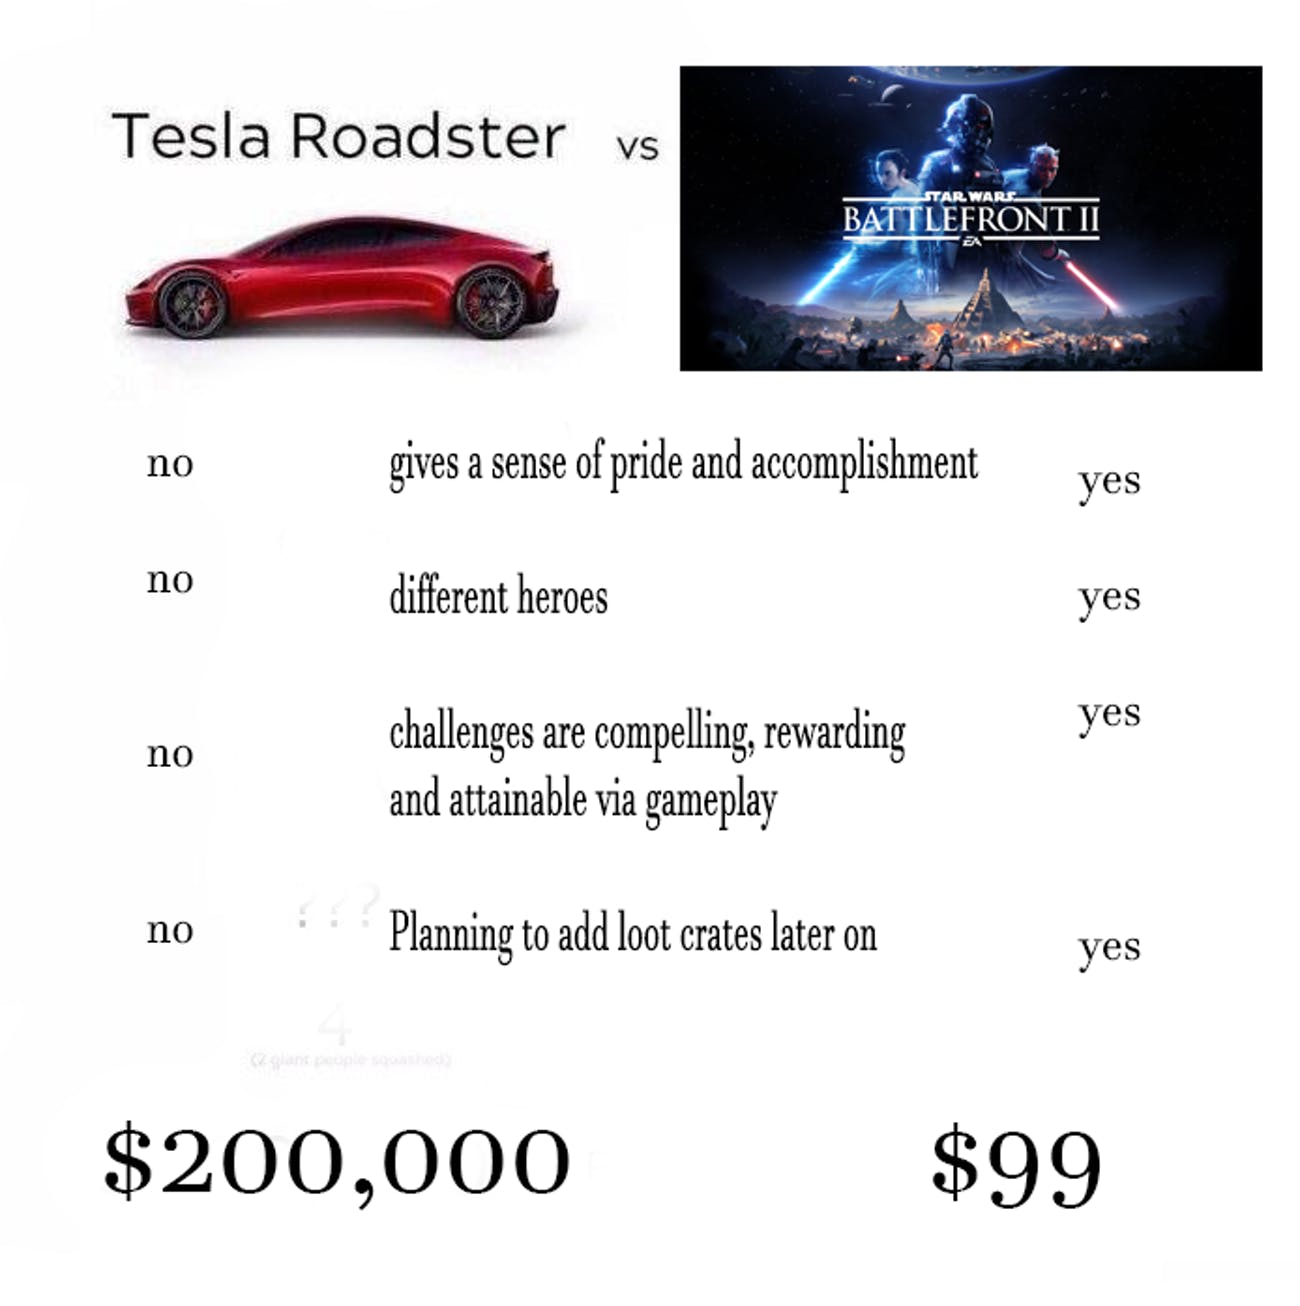 People are Roasting the Tesla Roadster with Memes | Inverse